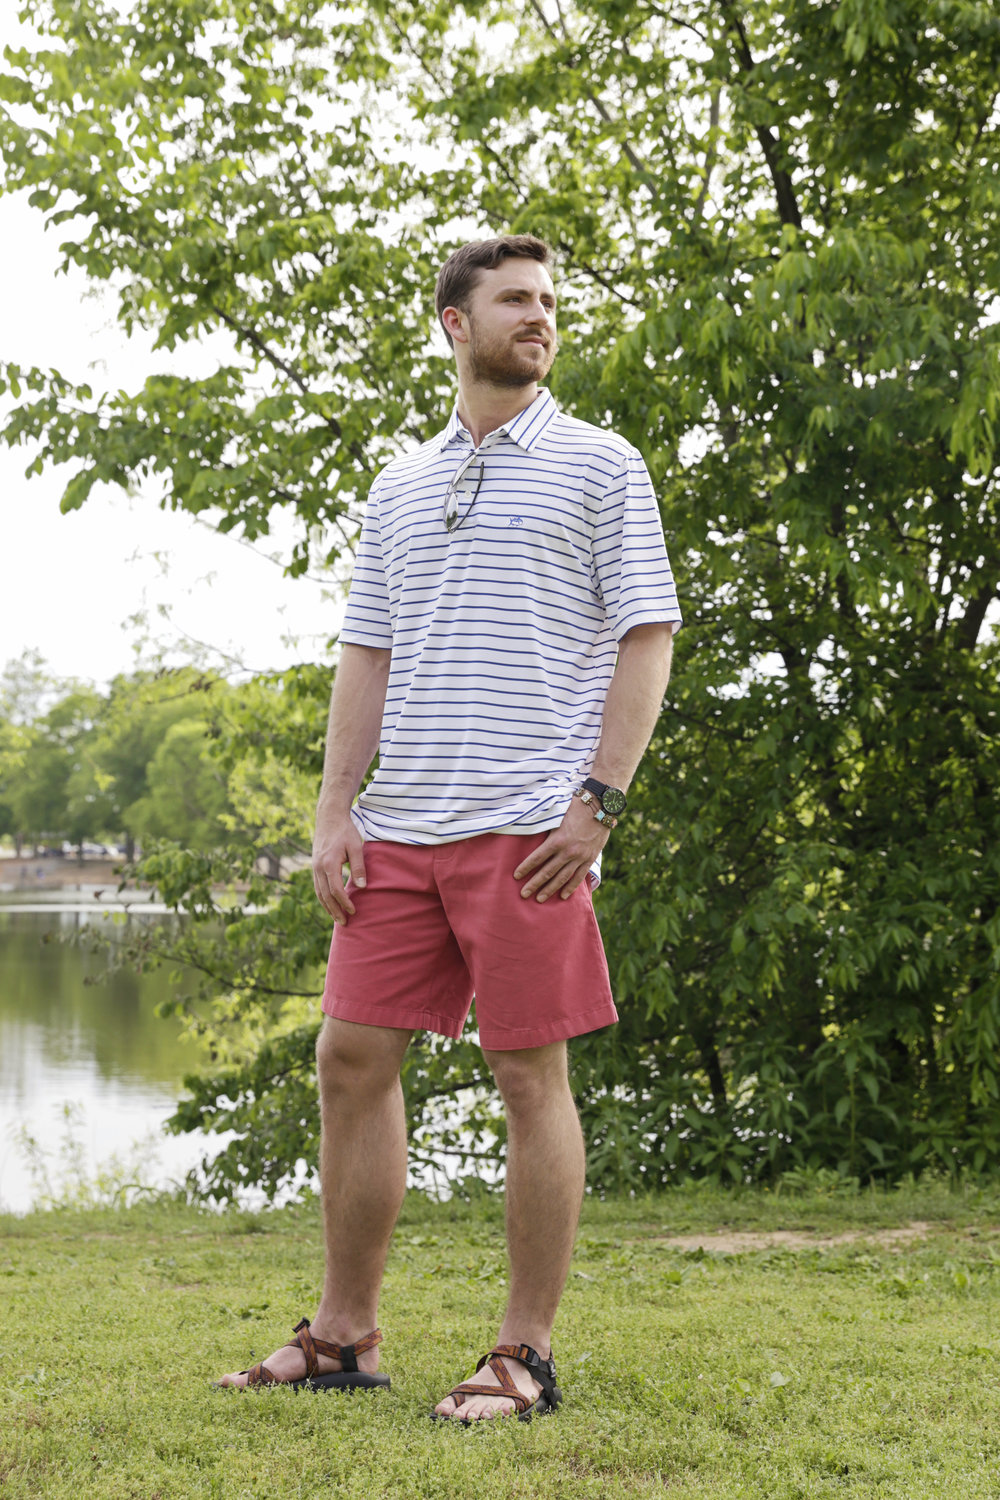 Southern Tide Driver Stripe performance polo & Skip Jack shorts Chaco z2 sandals